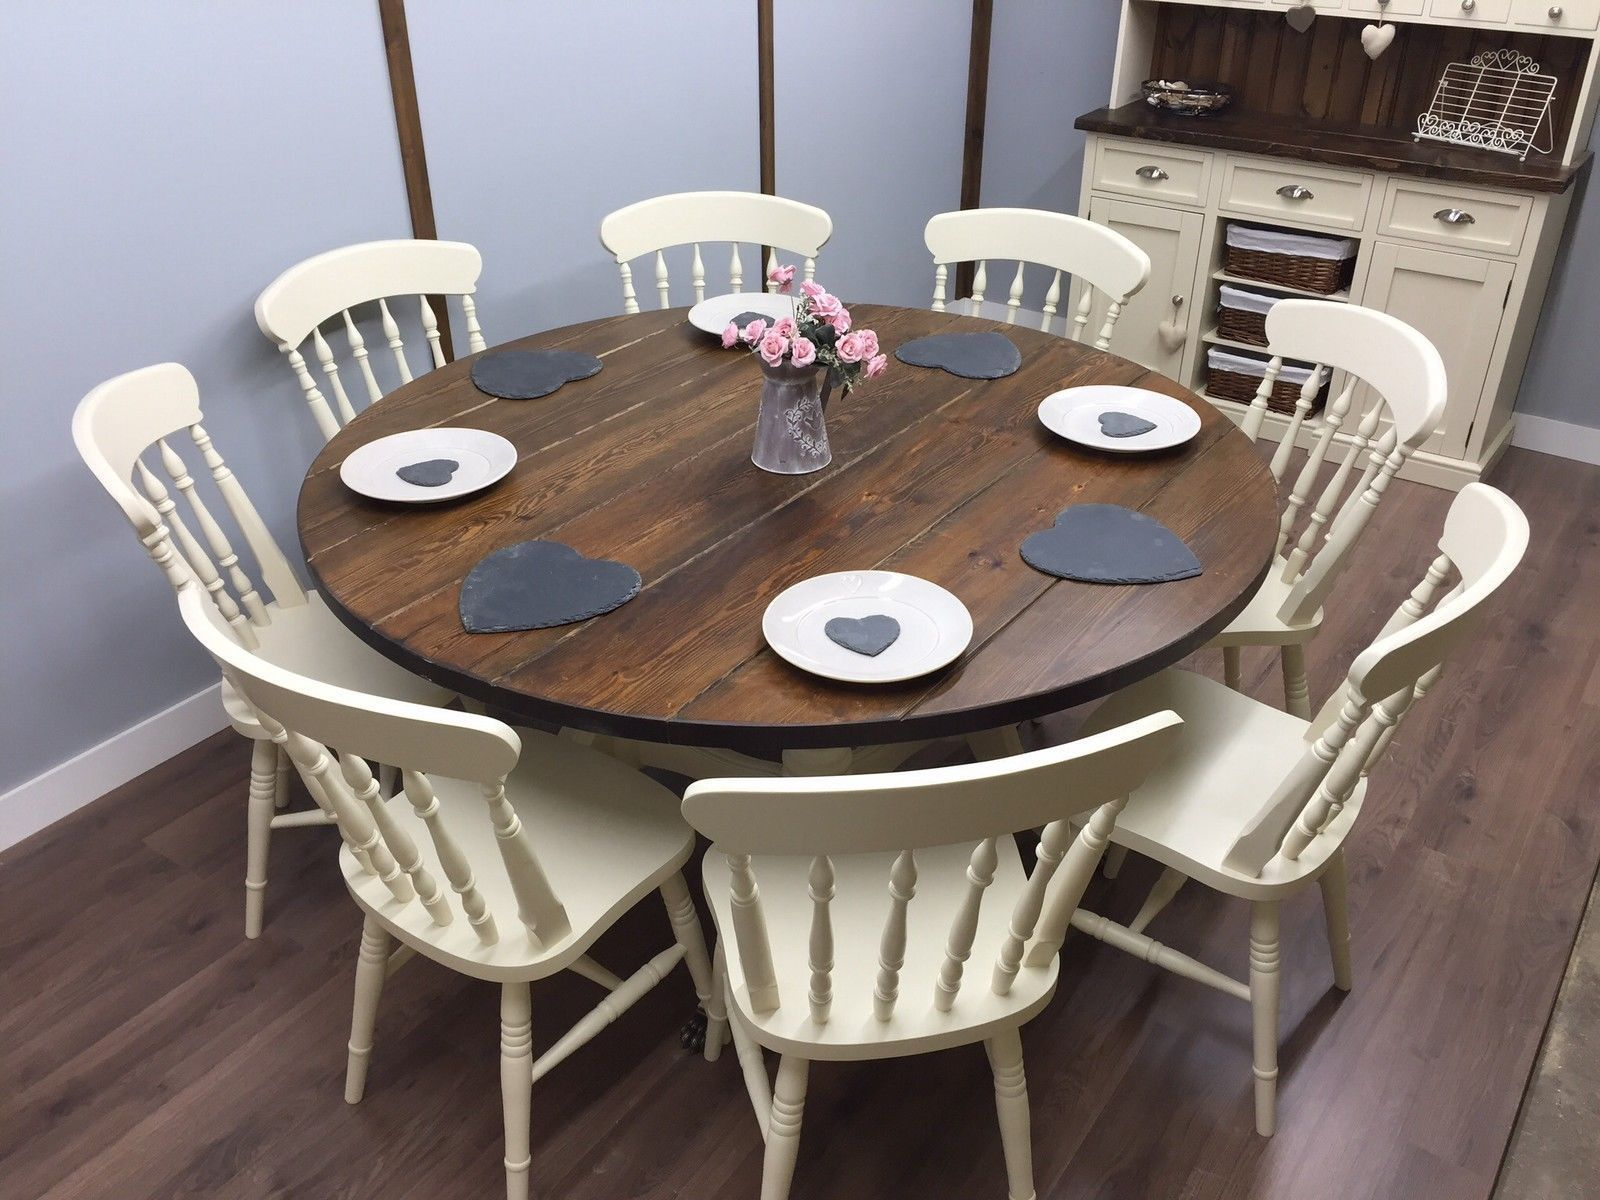 Flourish Your Home Appearance With Modern Round Dining Room Tables For 6 8 L Large Round Dining Table Modern Round Dining Room Modern Round Dining Room Table